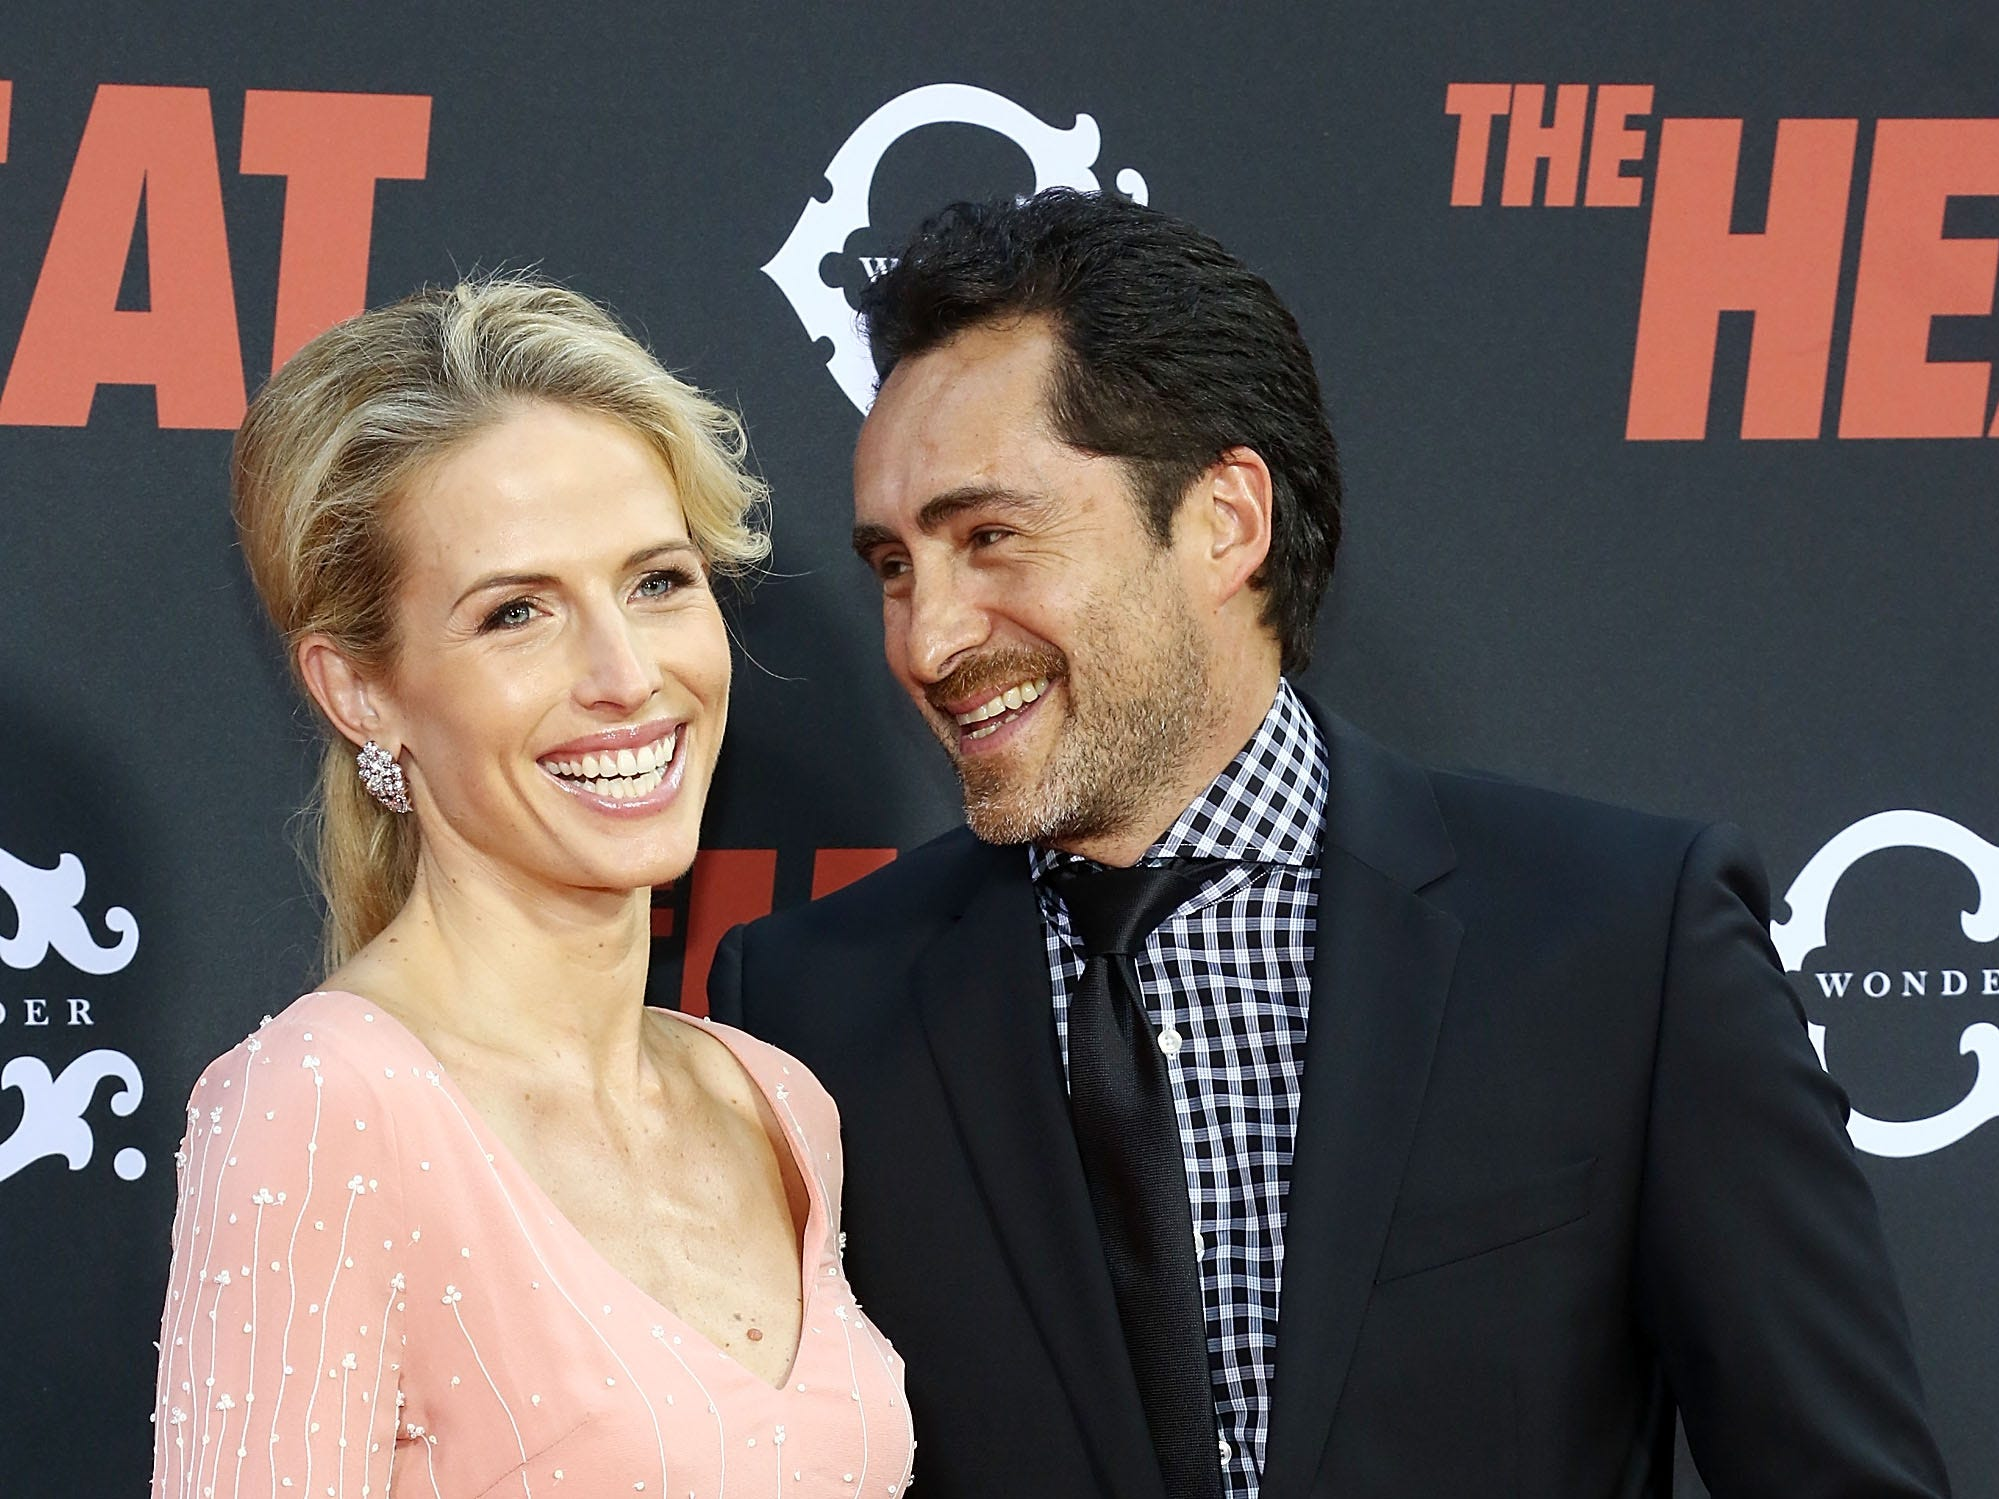 """Demian Bichir and Stefanie Shirk attend the premiere of his film """"The Heat"""" on June 23, 2013, in New York City."""